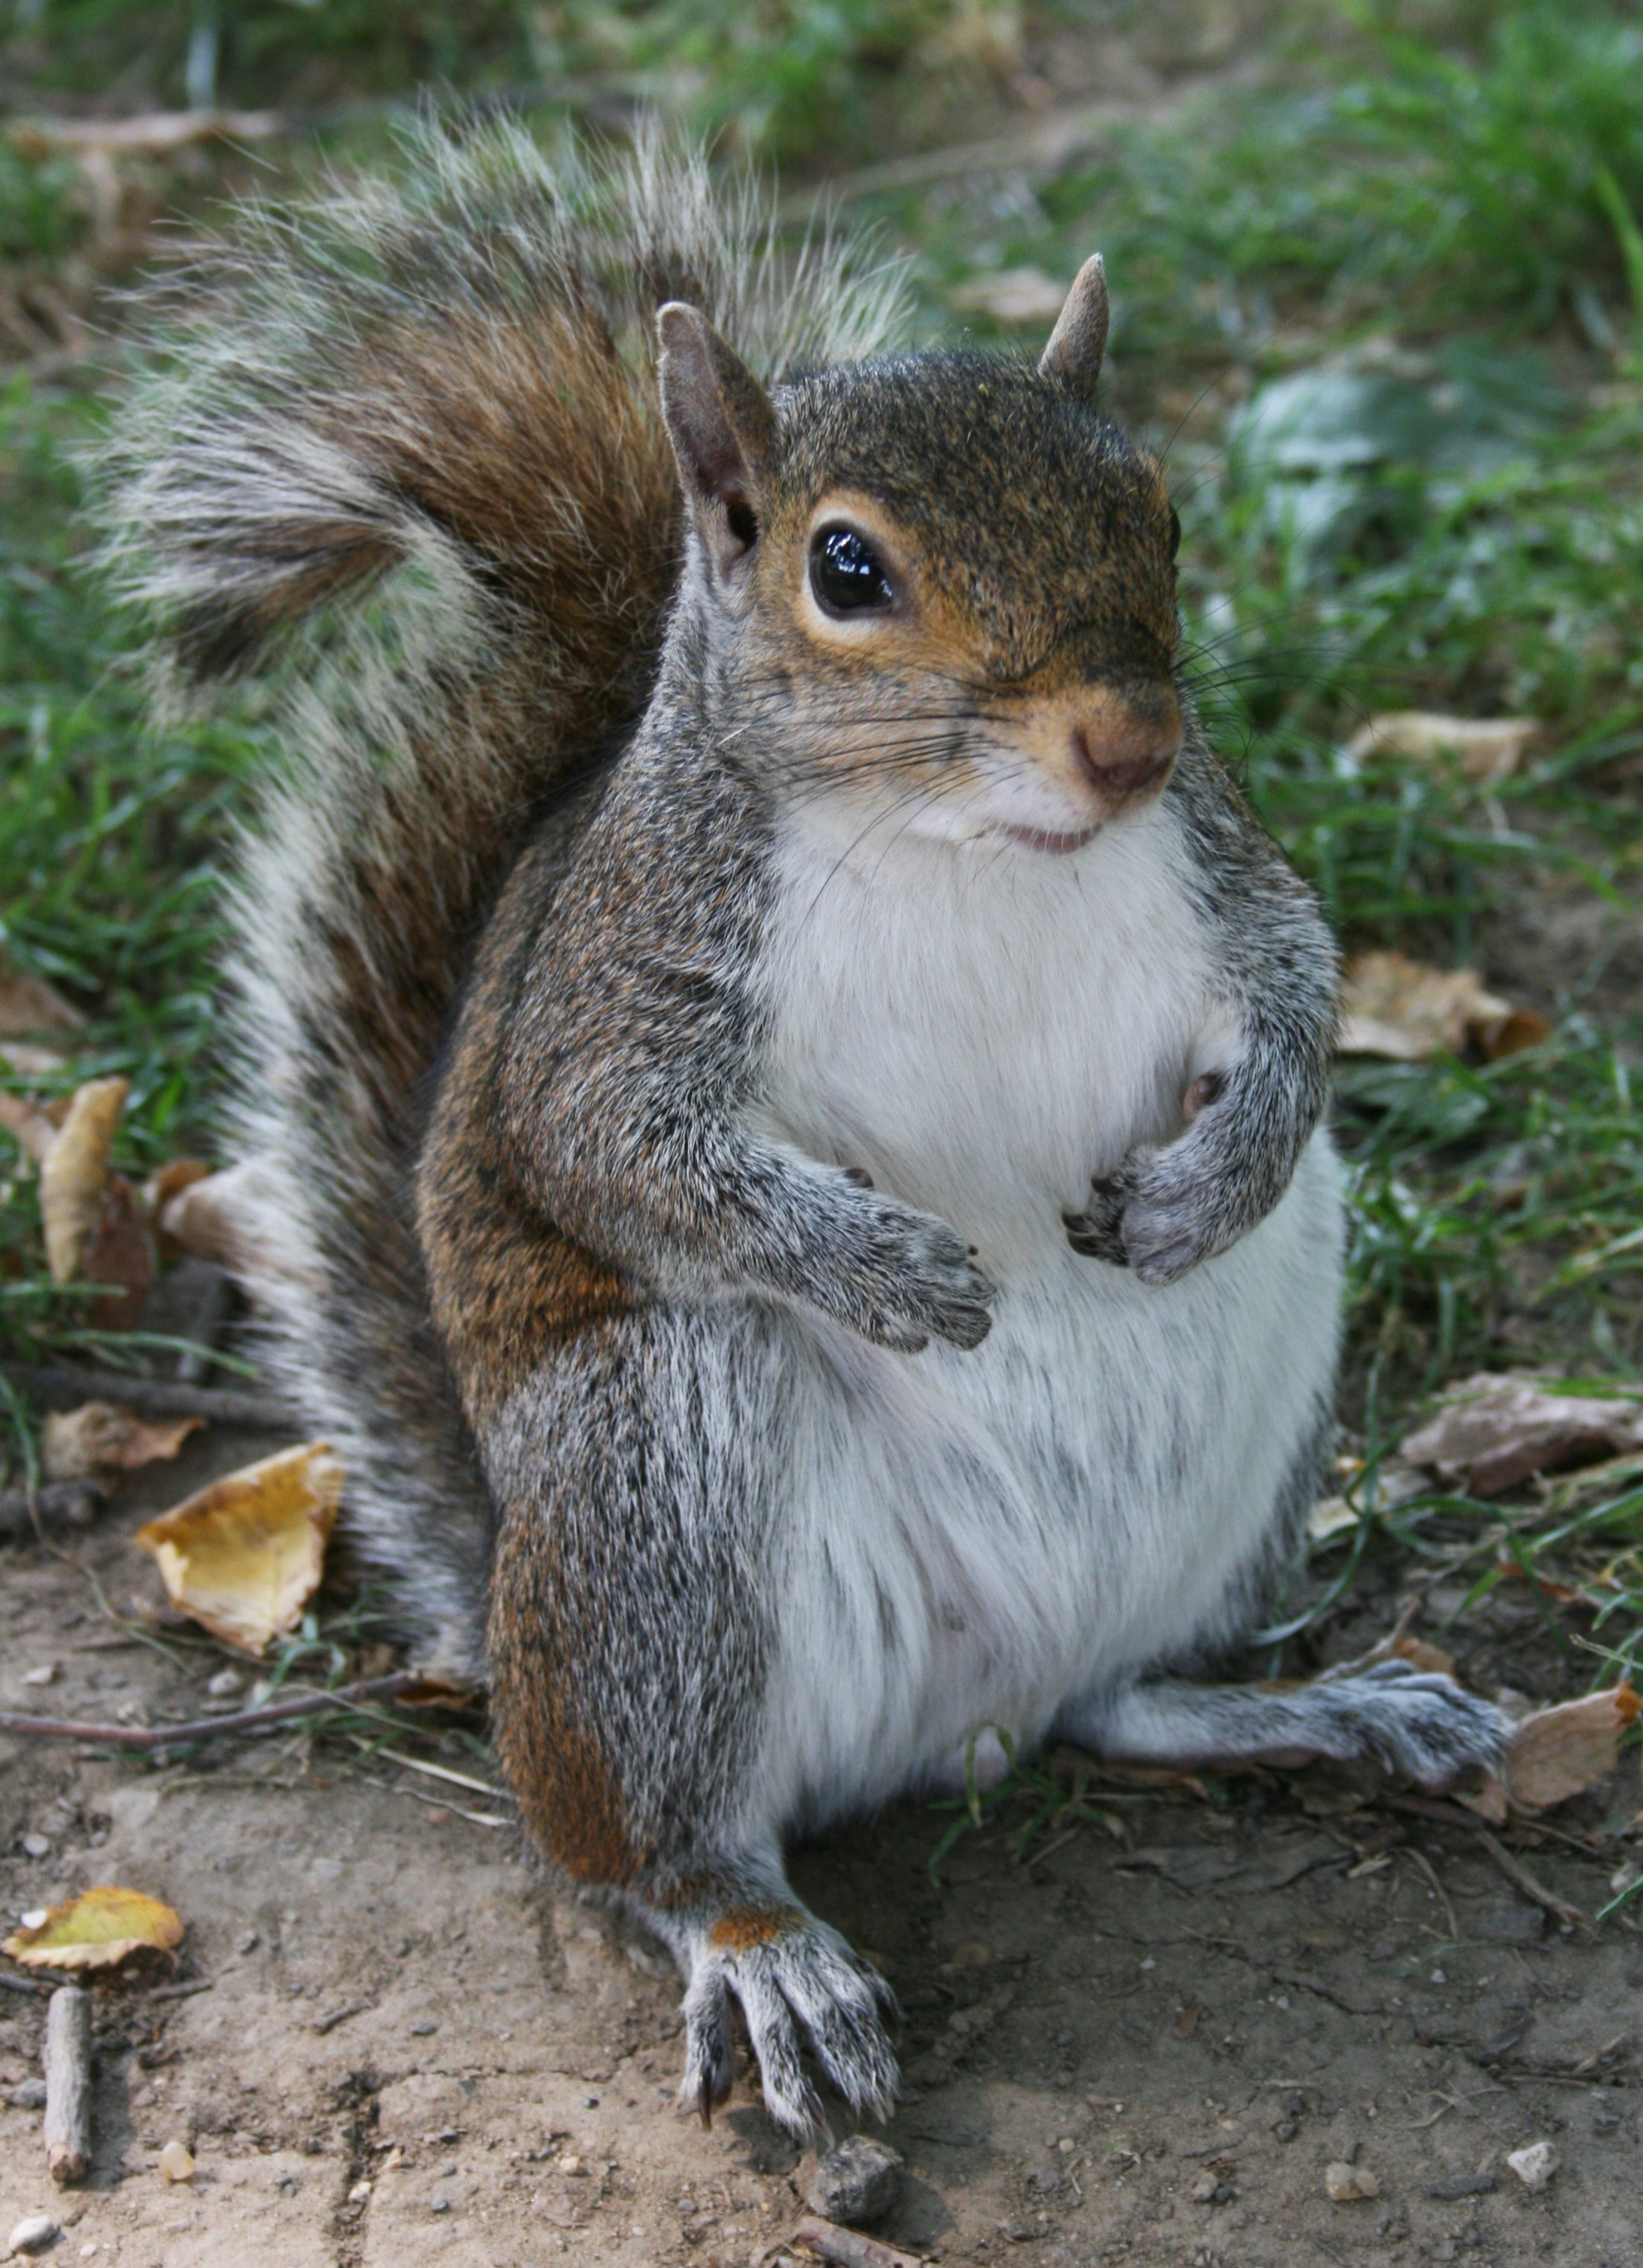 Squirrel - 01 photo